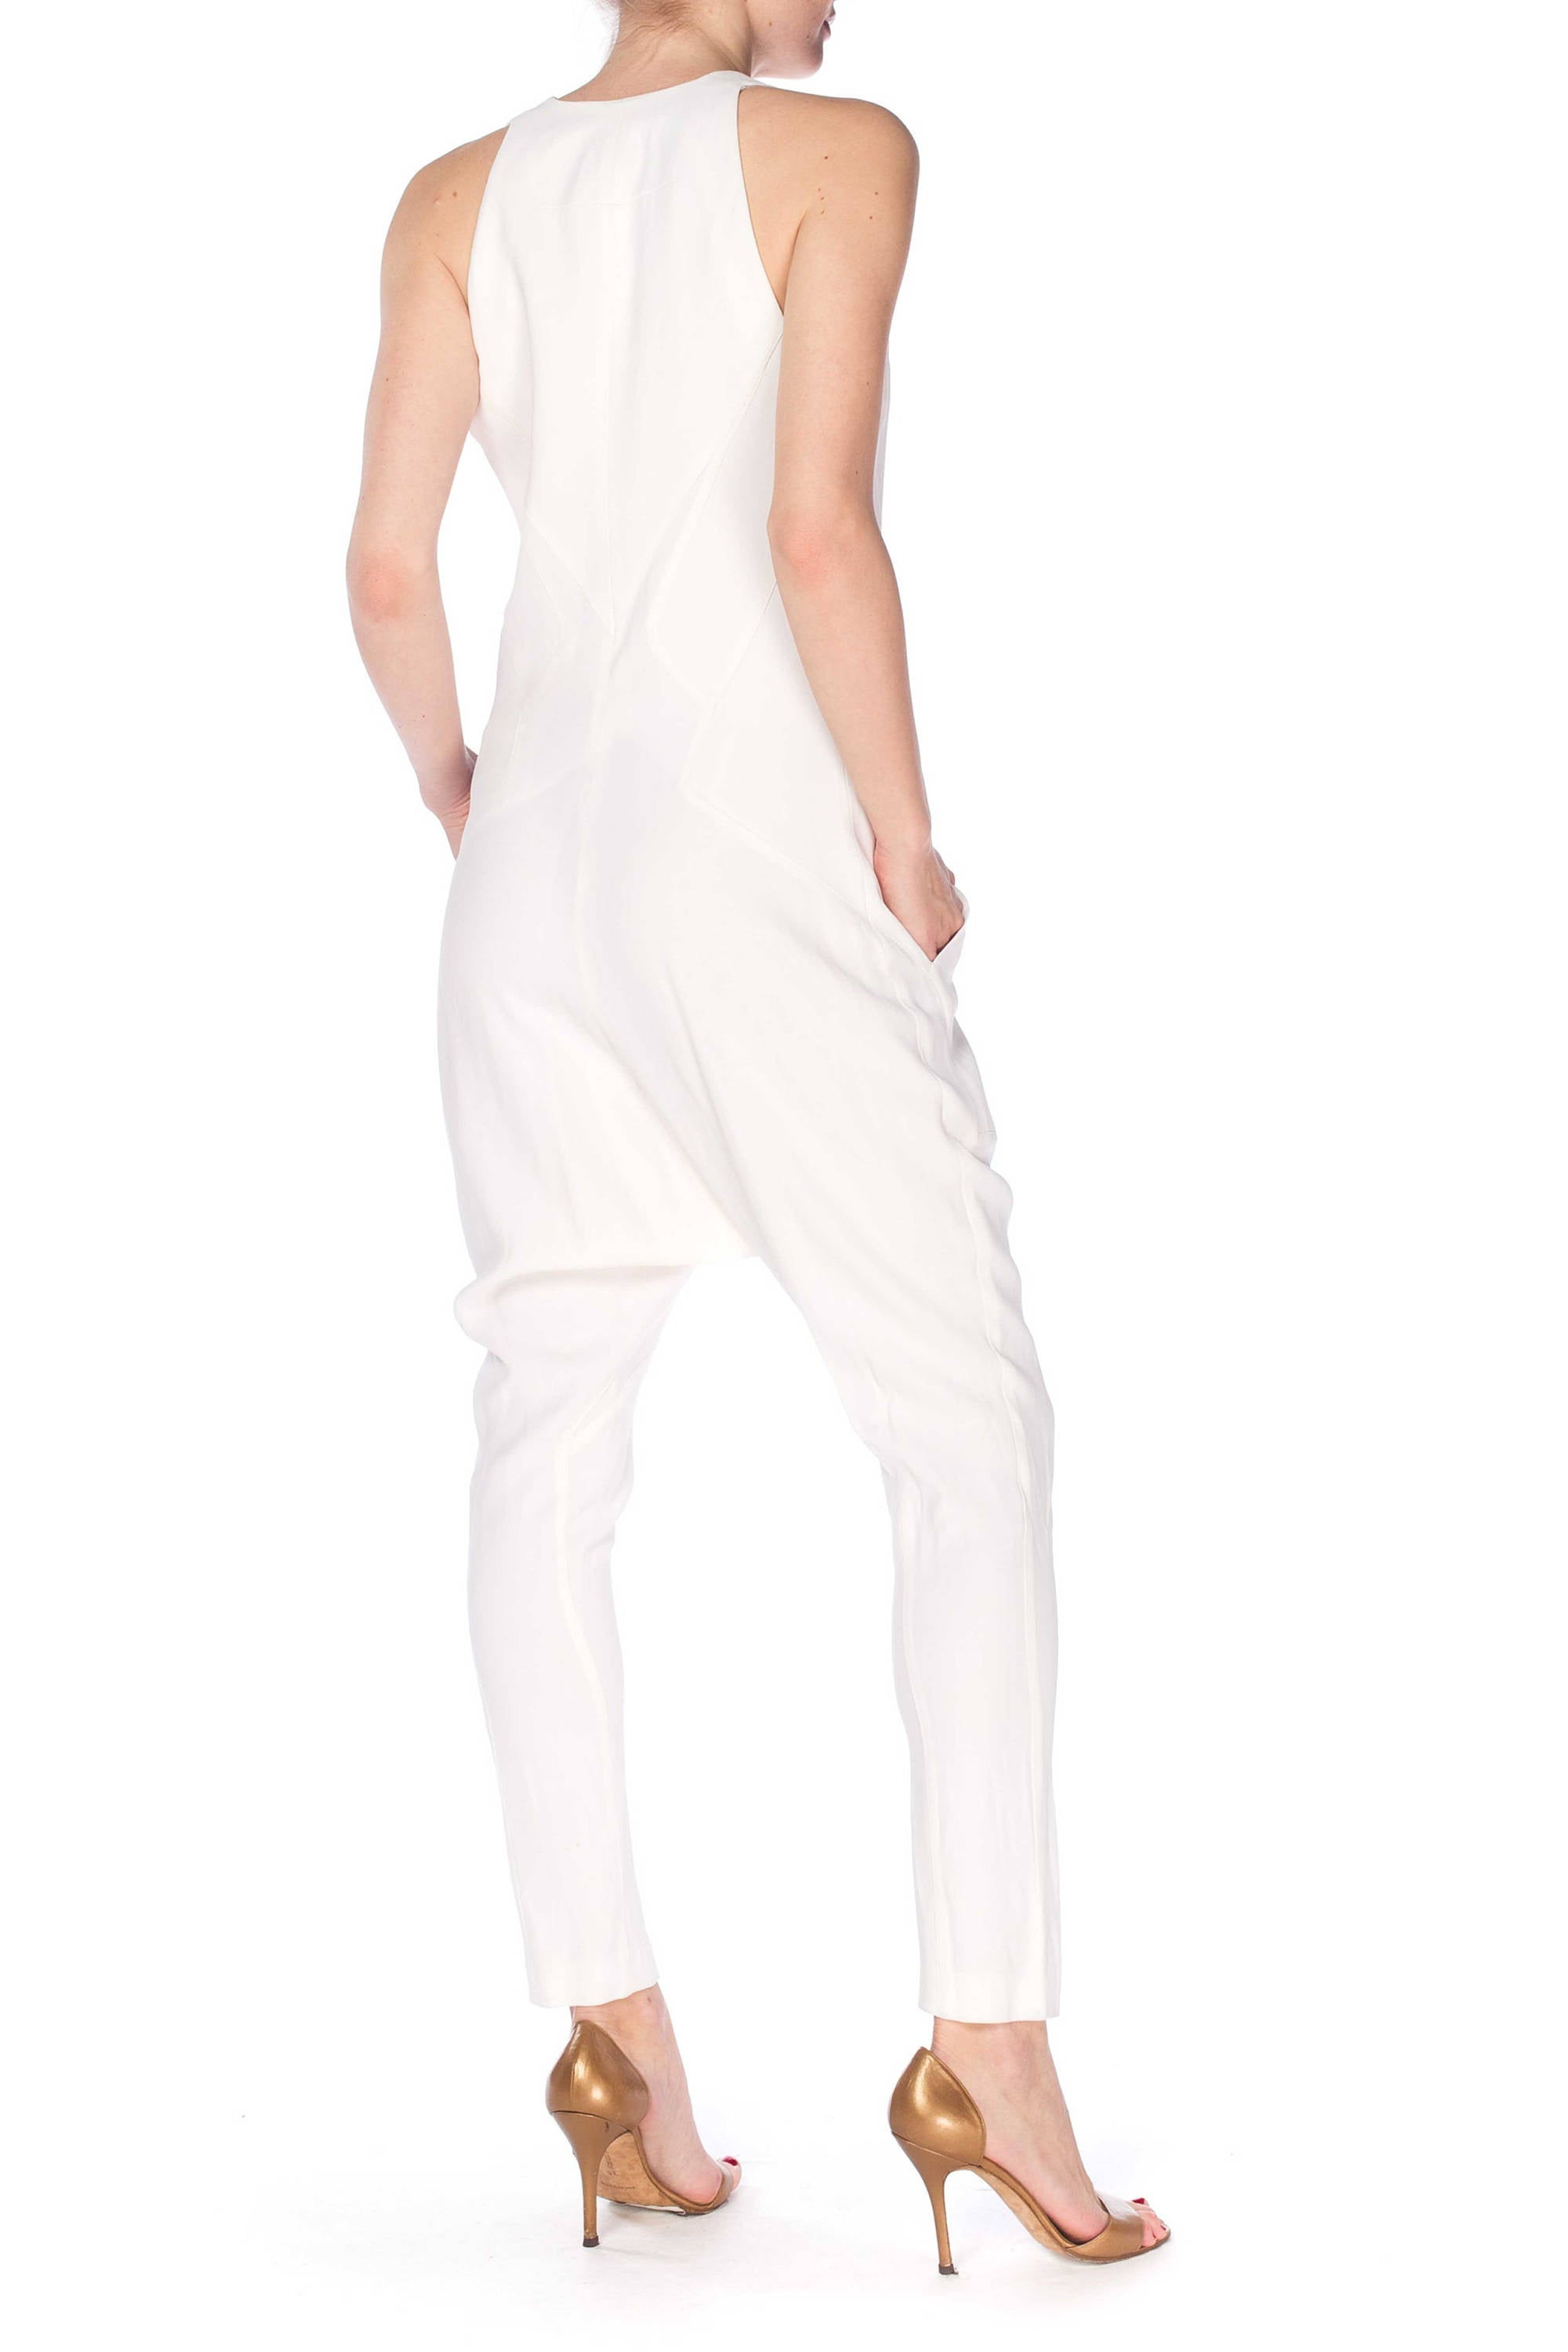 2000S GIVENCHY White Viscose Crepe Low Cut Jumpsuit With Super Cool Seaming & Pockets